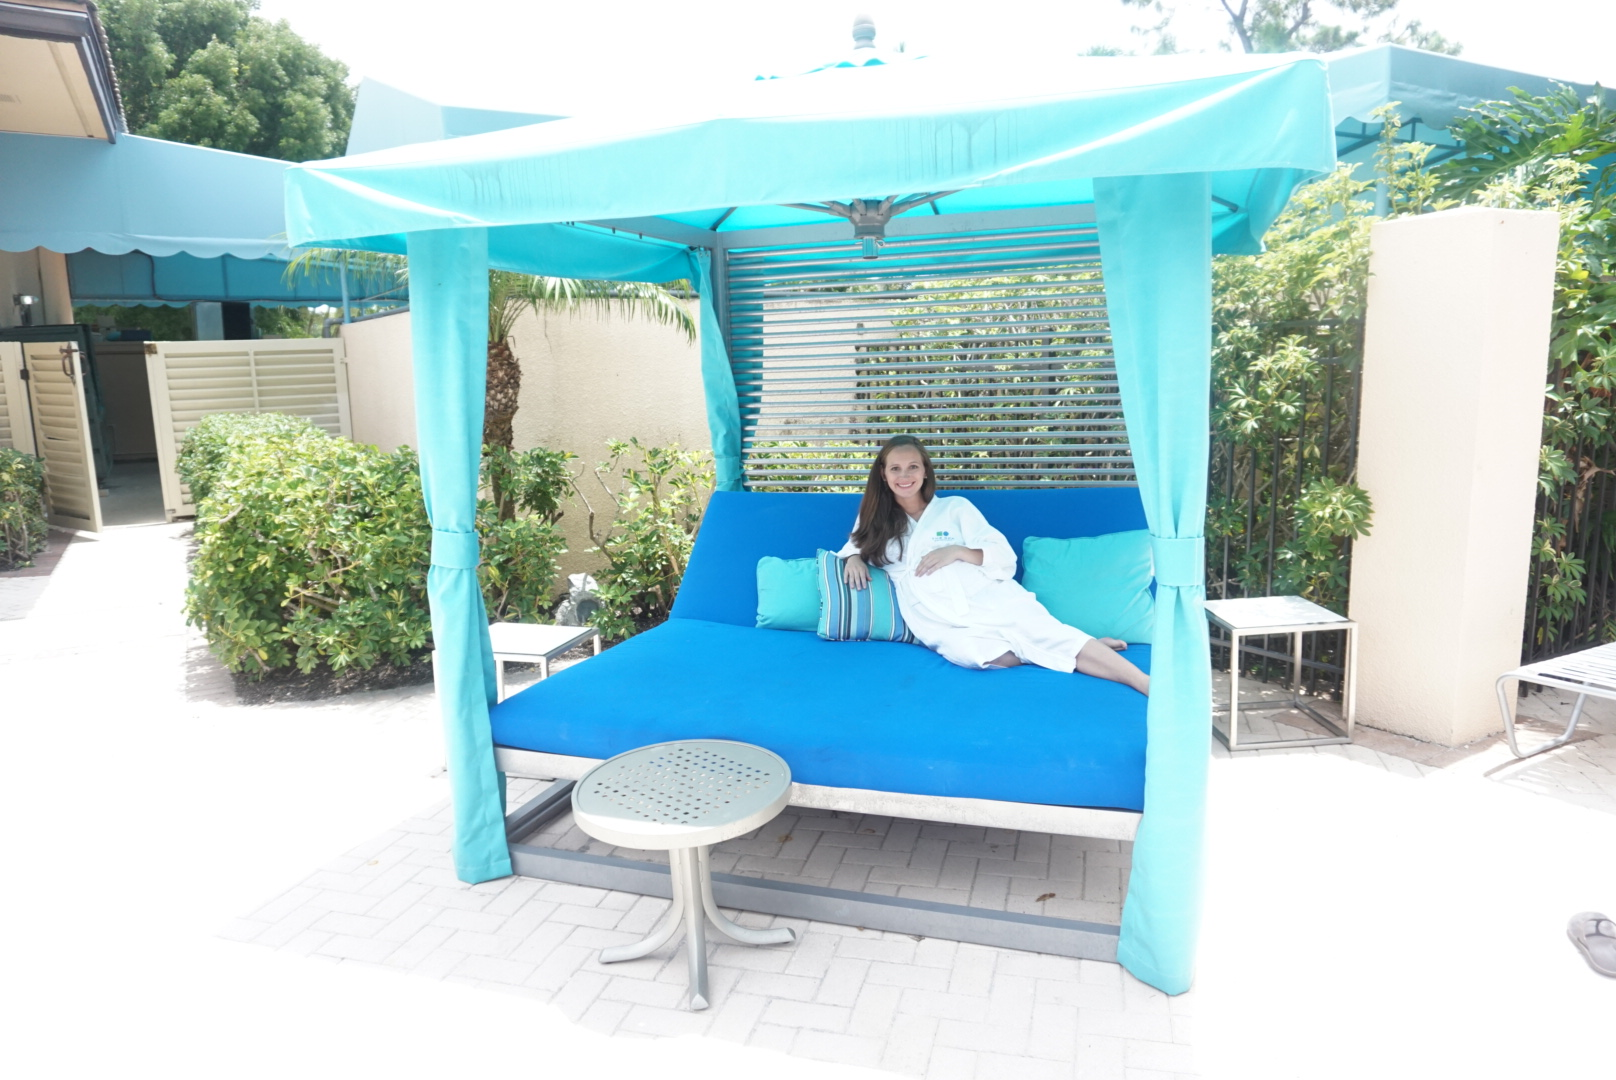 Relaxing by the spa pool is a major bonus for moms vacationing in The Palm Beaches.